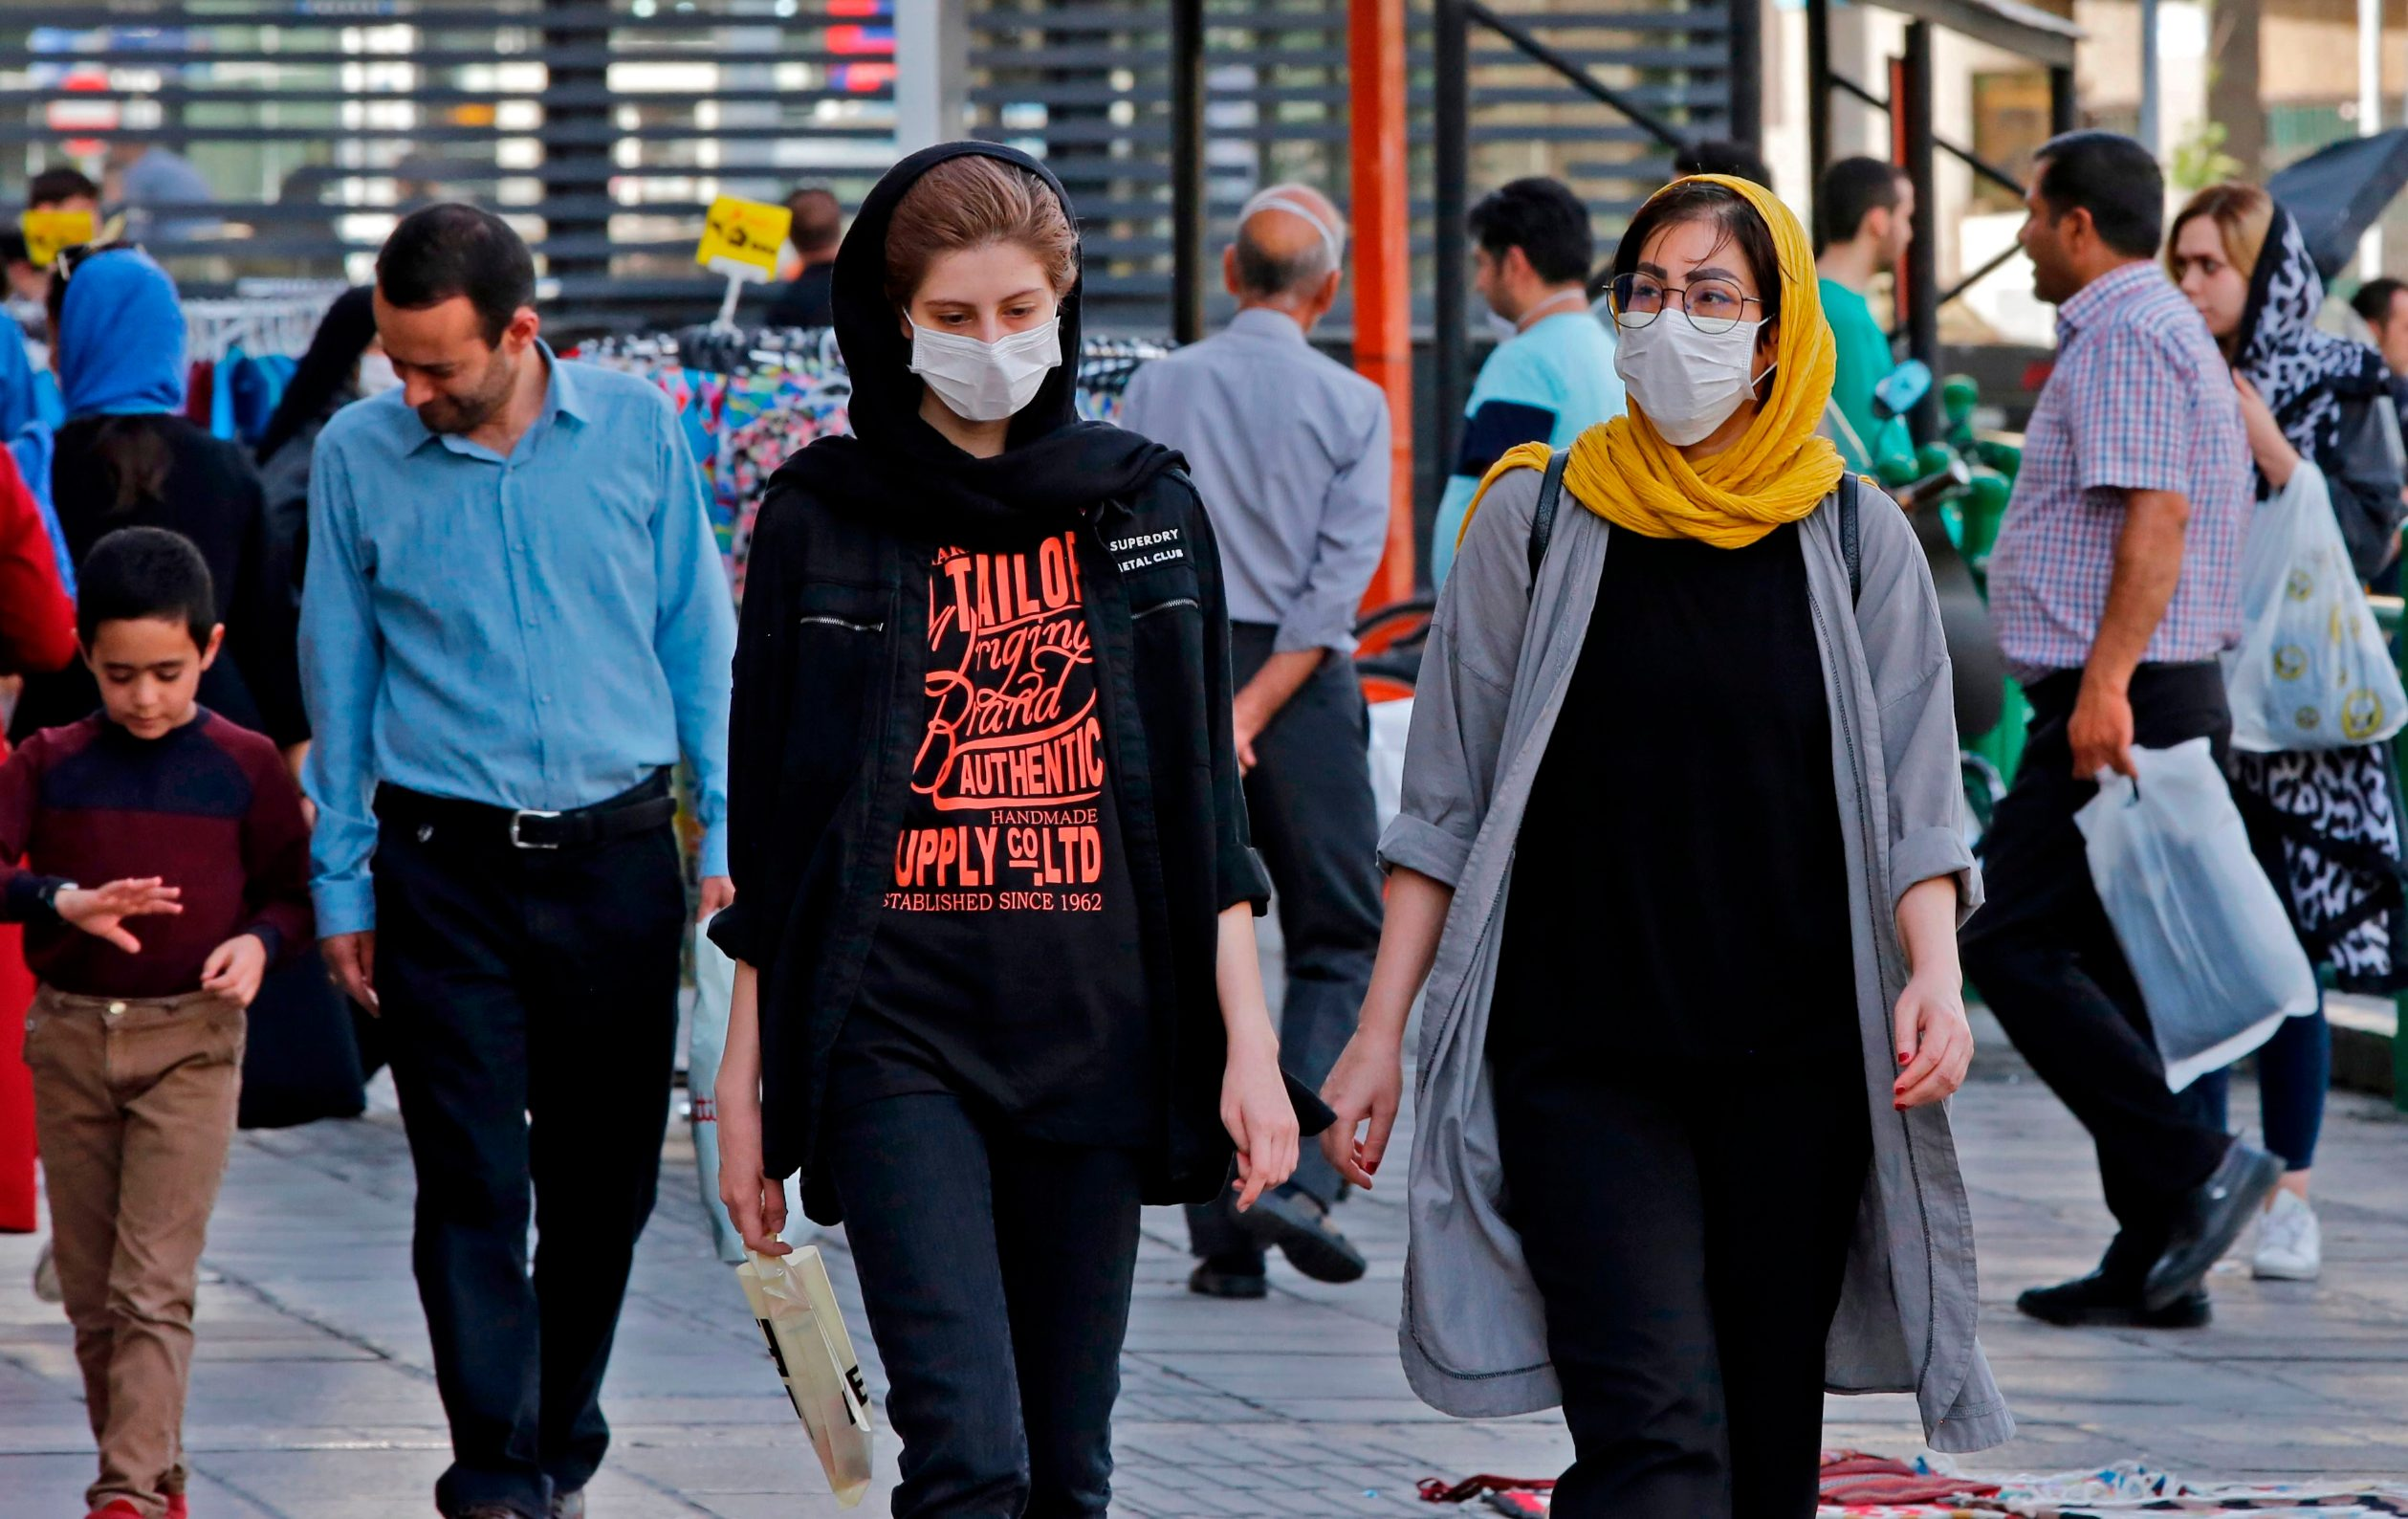 Iranians, some wearing face masks, walk along a street in the capital Tehran on June 3, 2020, amid the novel coronavirus pandemic crisis. - The spread of novel coronavirus has accelerated again this month in Iran which today officially confirmed over 3,000 new cases for a third consecutive day. (Photo by - / AFP)